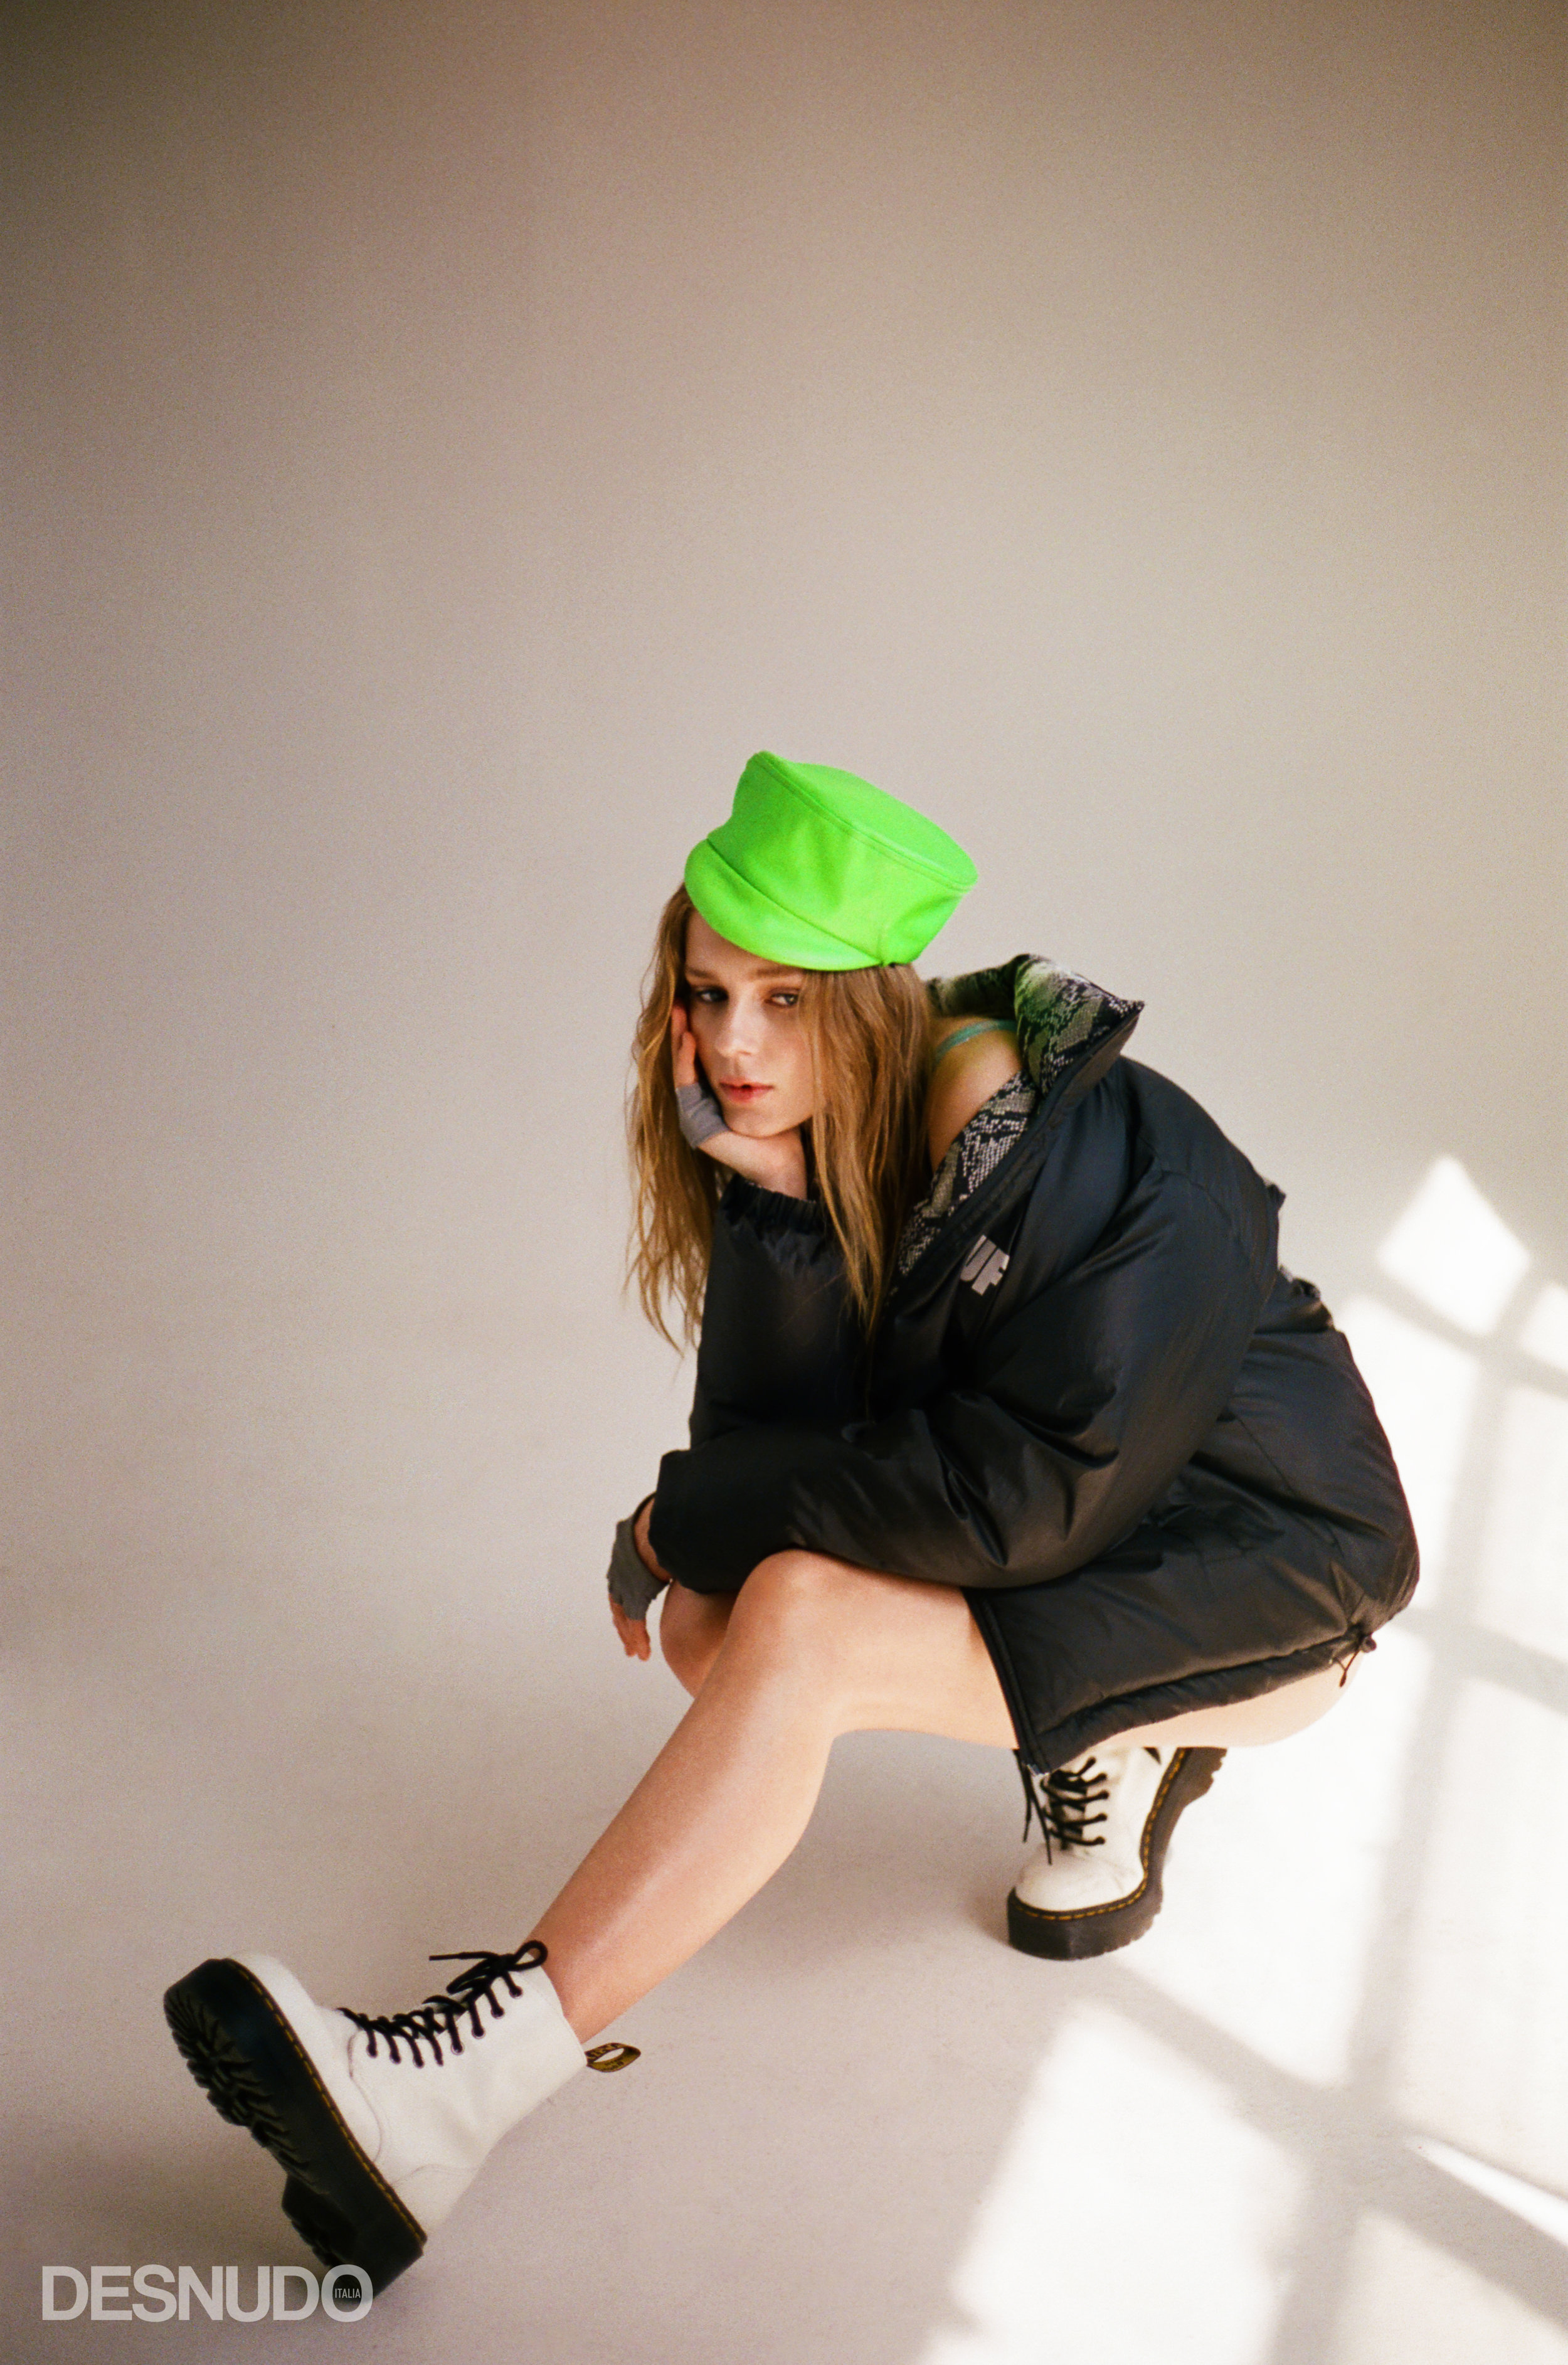 glitter bodysuit  BUNNY HOLIDAY , puffer jacket  USED FUTURE , neon hat and cropped gloves  SAINT GERMAINE , boots  DR MARTENS